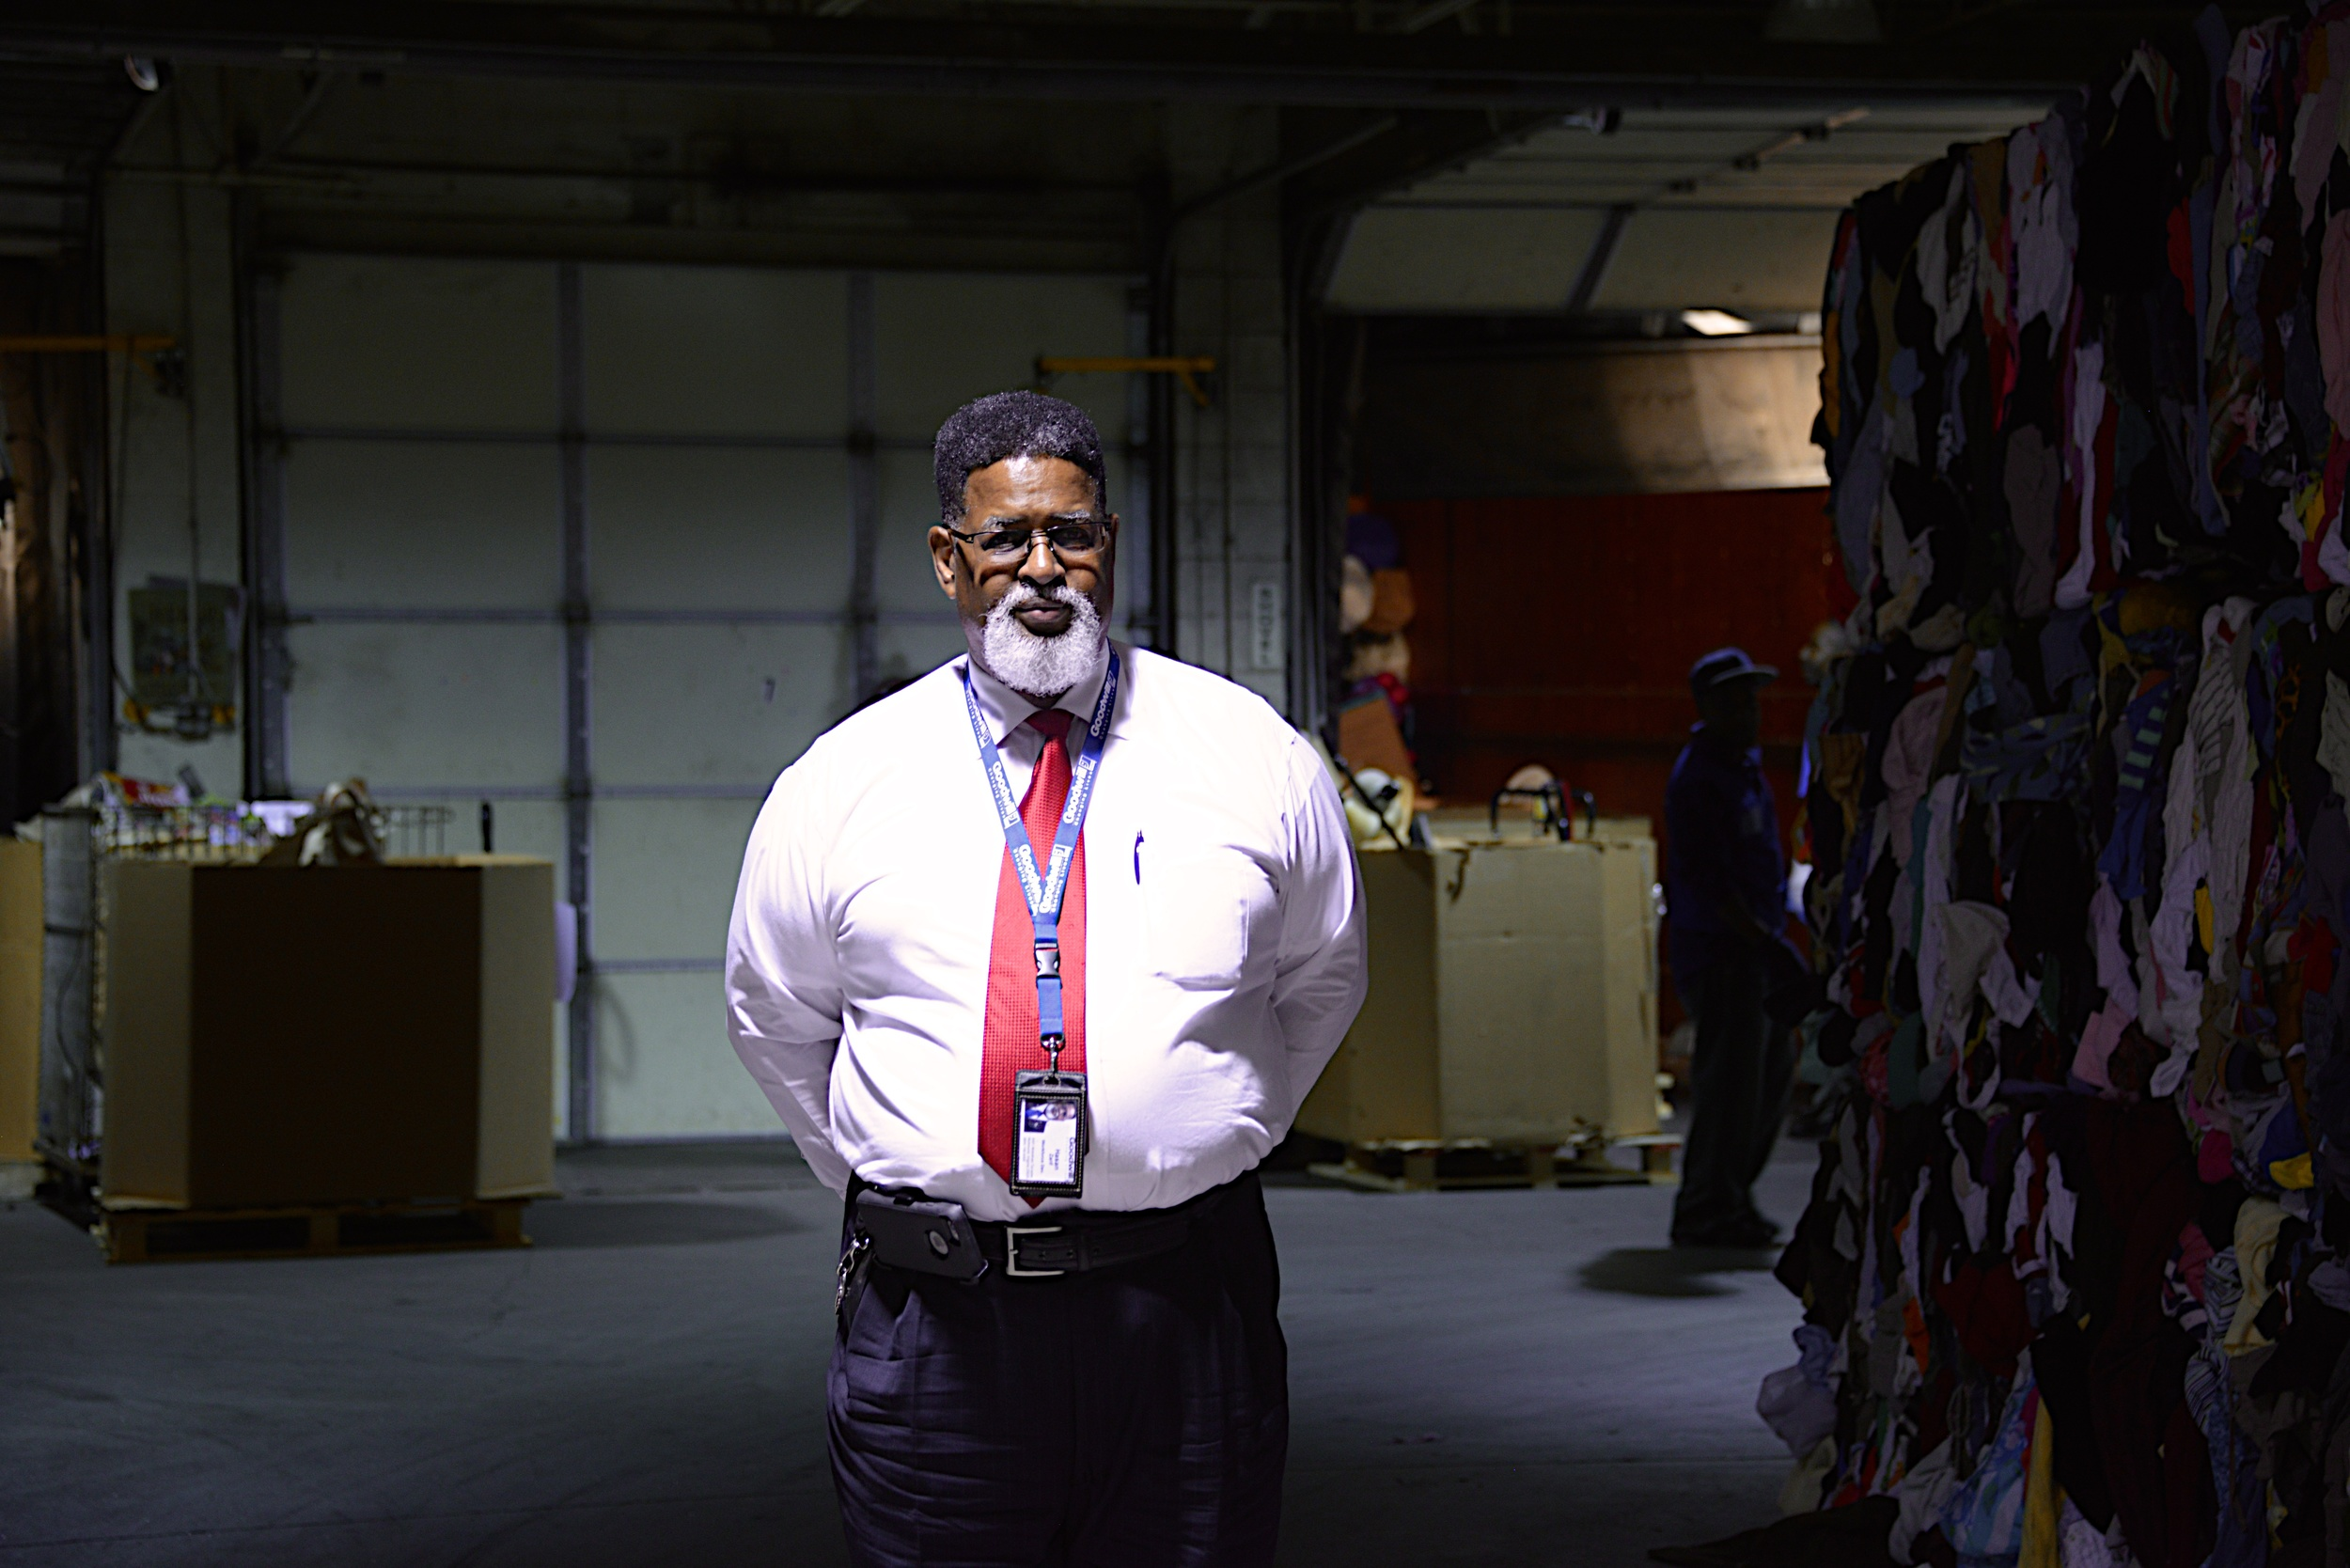 Photographed in the Goodwill donation warehouse. The sale of items supports Hasan's work.